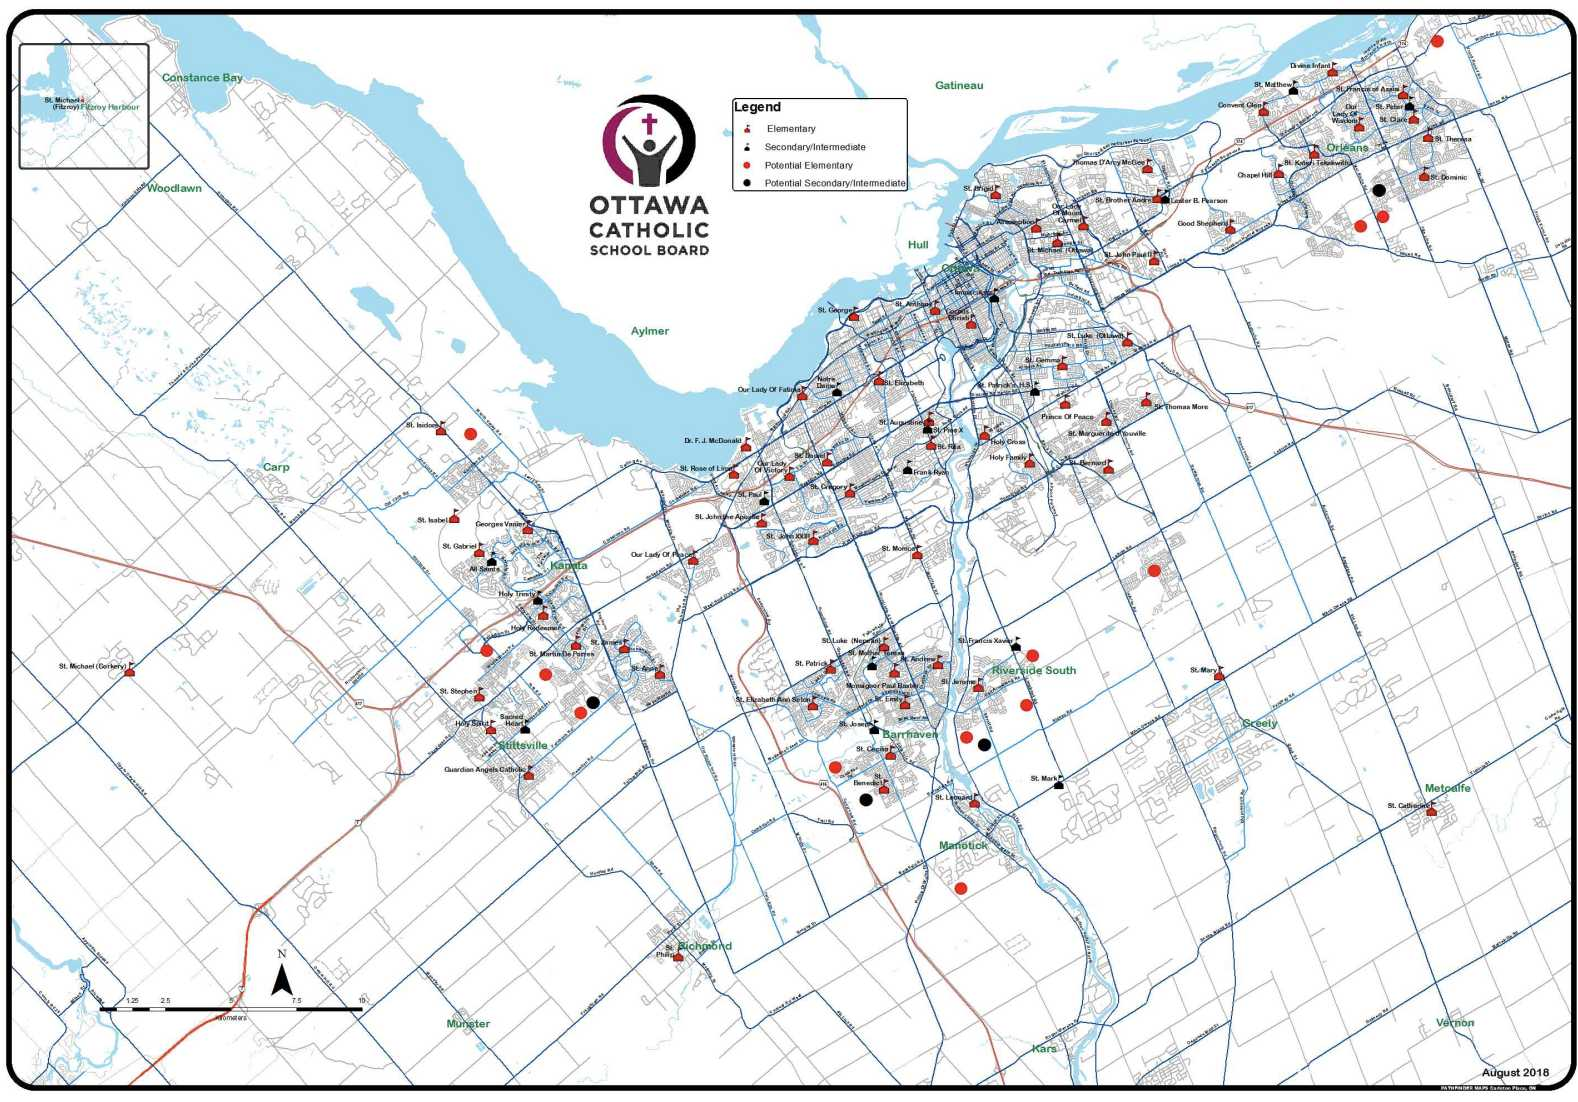 OCSB school boundary maps greenbelt map image